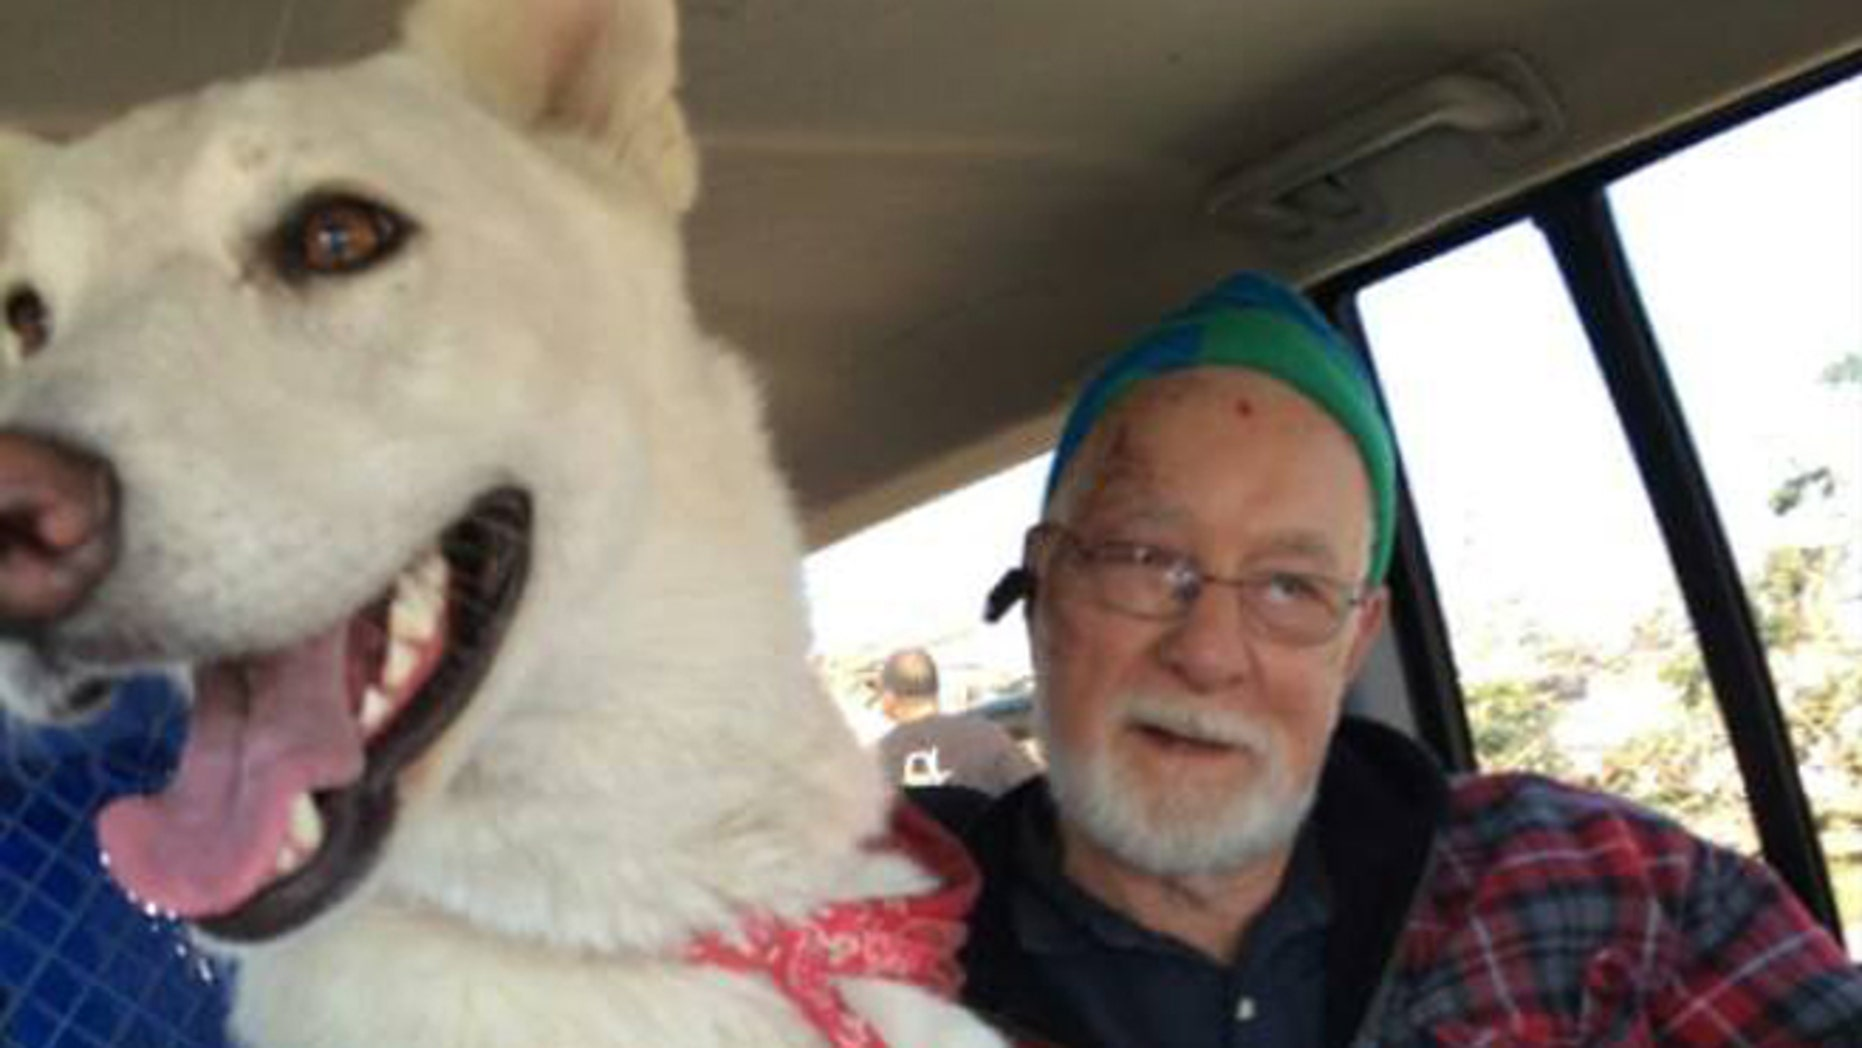 """Missy, a white German shepherd who disappeared following a tornado that hit Fairdale, Ill., on Thursday, was reunited with her family on Saturday, according to """"The Search for Missy"""" Facebook page, where this photo was posted."""